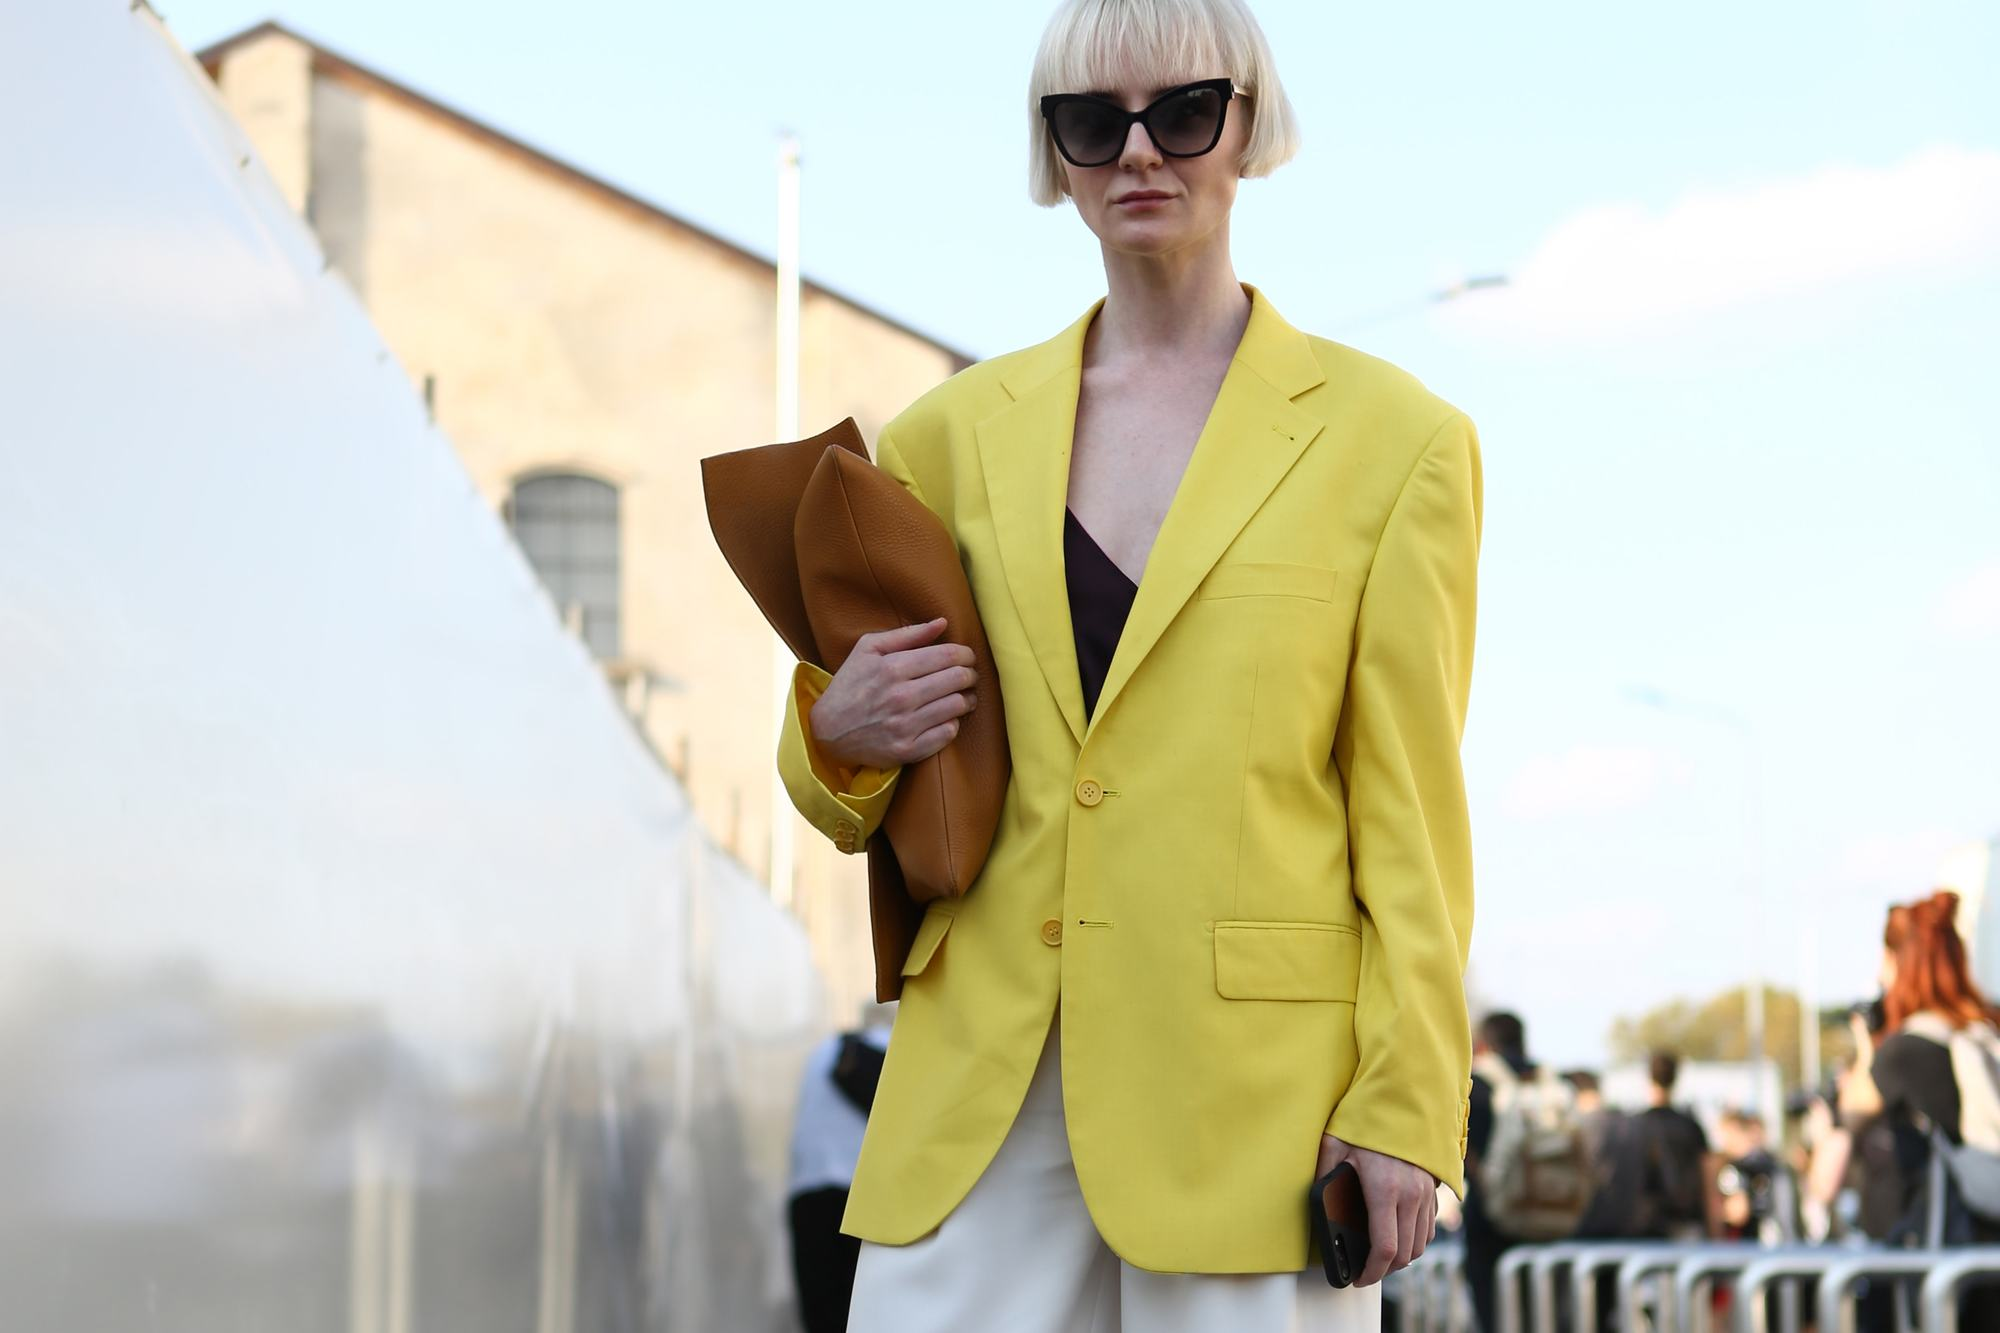 Milan Fashion Week Street Style FW19: Woman with short blonde bob with bangs wearing sunglasses and a yellow blazer.